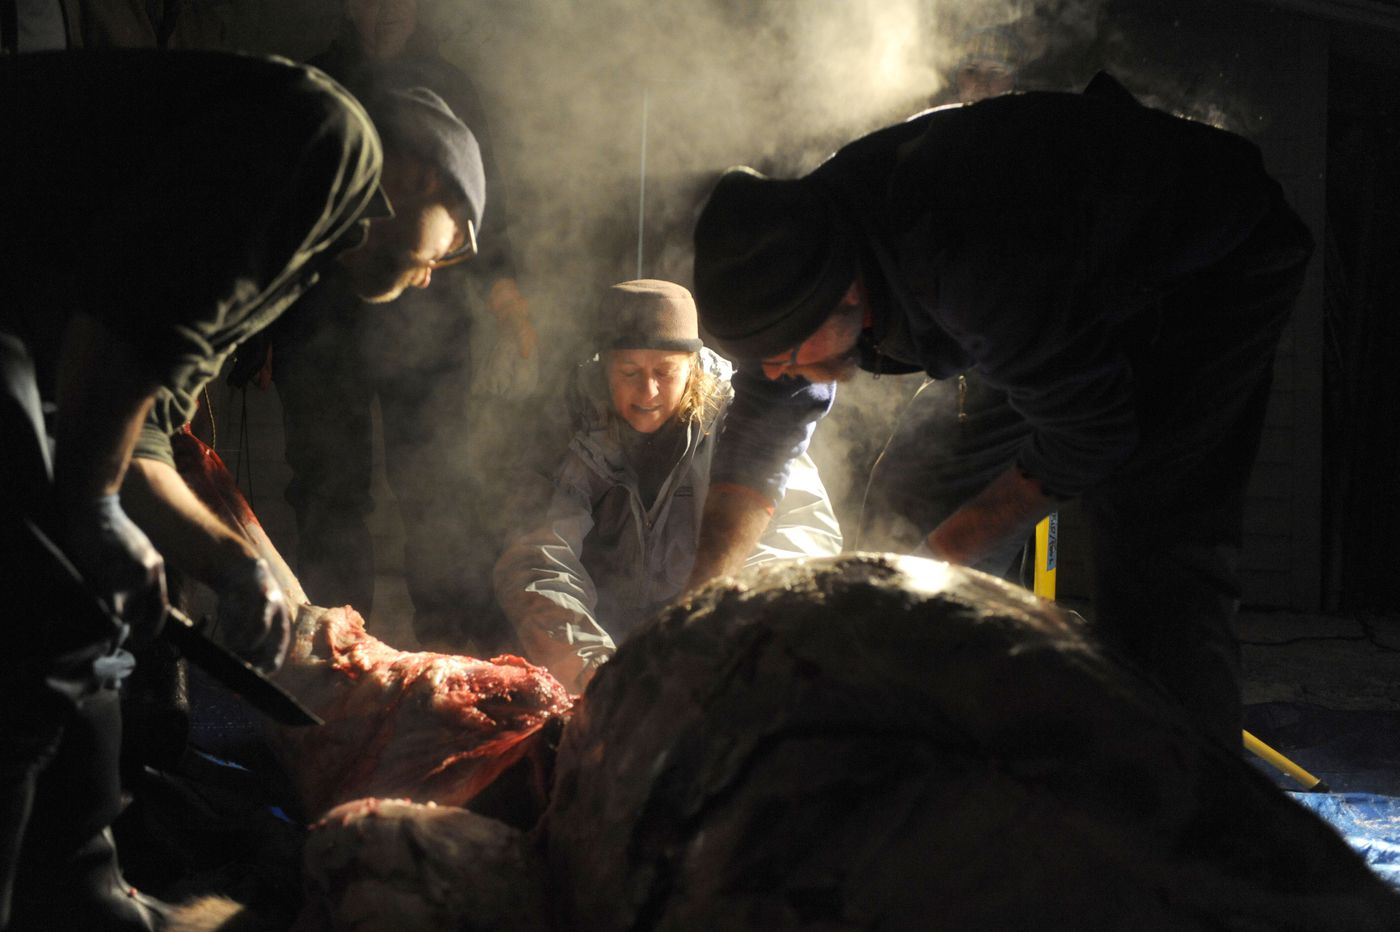 Steam rises from the body of a moose, as Cameron Hubbard, Sharon Skidmore and Mark Wedekind work to field dress the animal. The road-killed moose was delivered by Don Dyer, of the Moose Federation, Dec. 14, 2015 after it was killed on the Anchorage hillside.